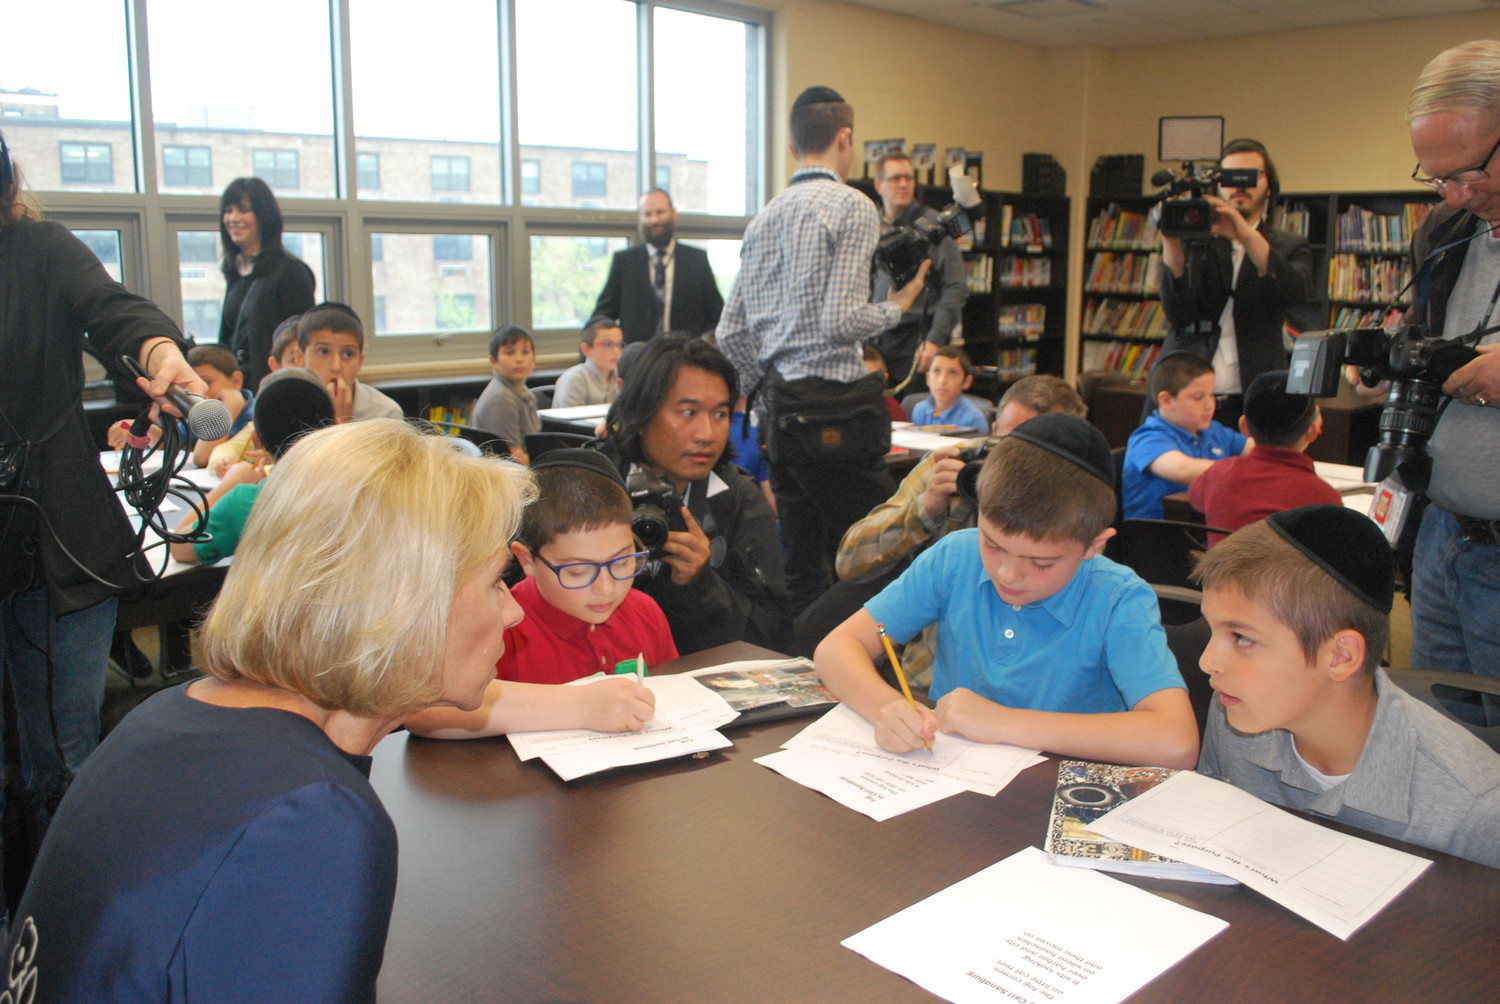 Darchei Torah students explained to Secretary of Education Betsy DeVos what they learned about poetry.